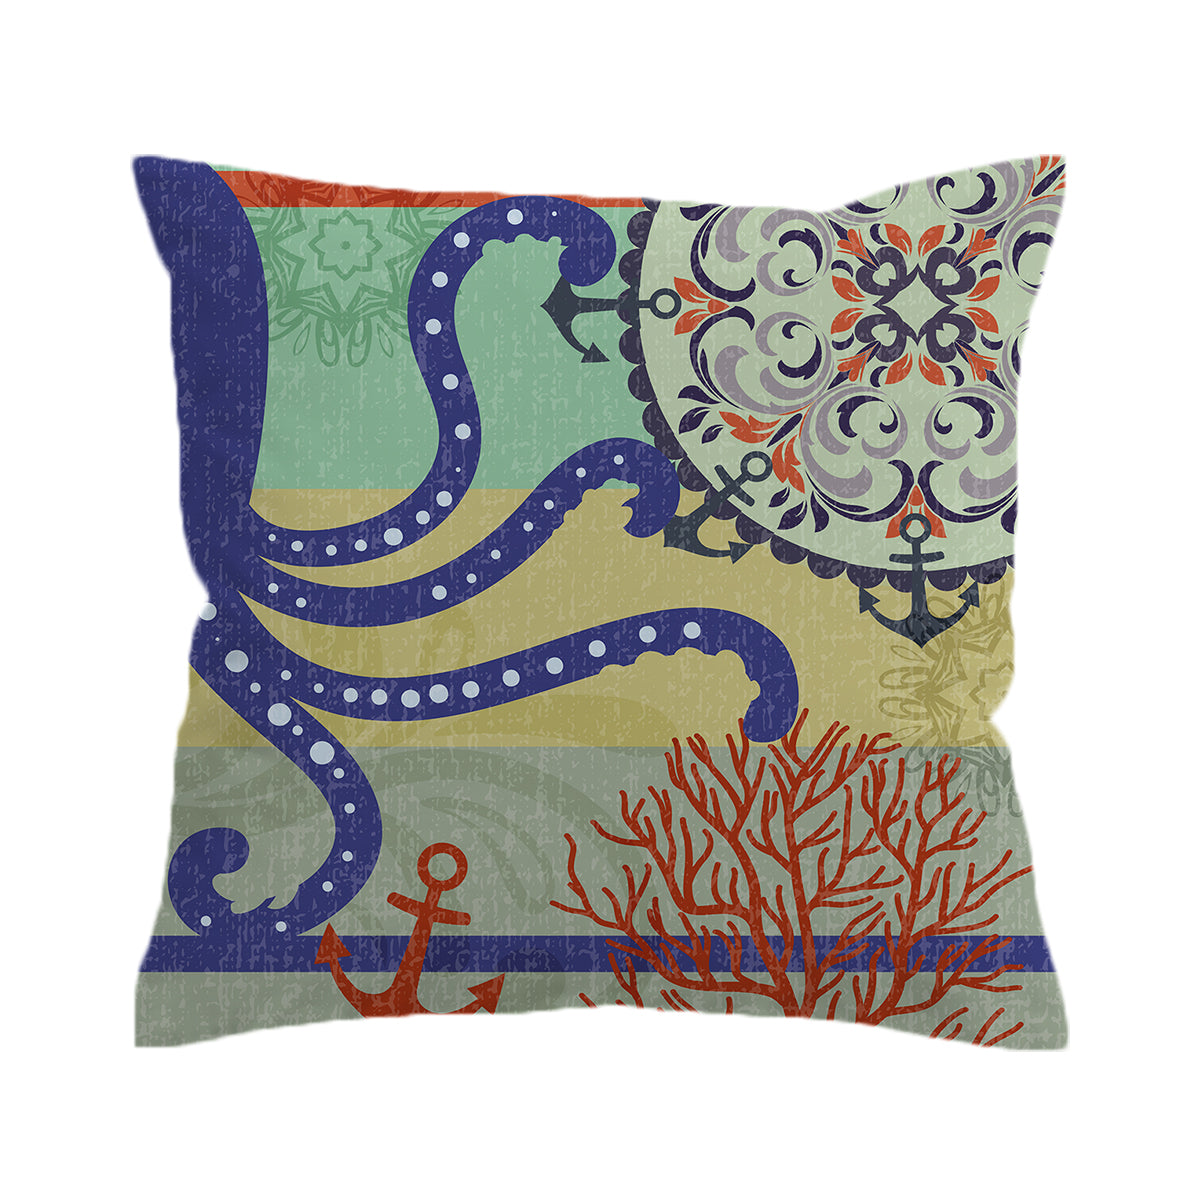 Octopus Passion Pillow Cover